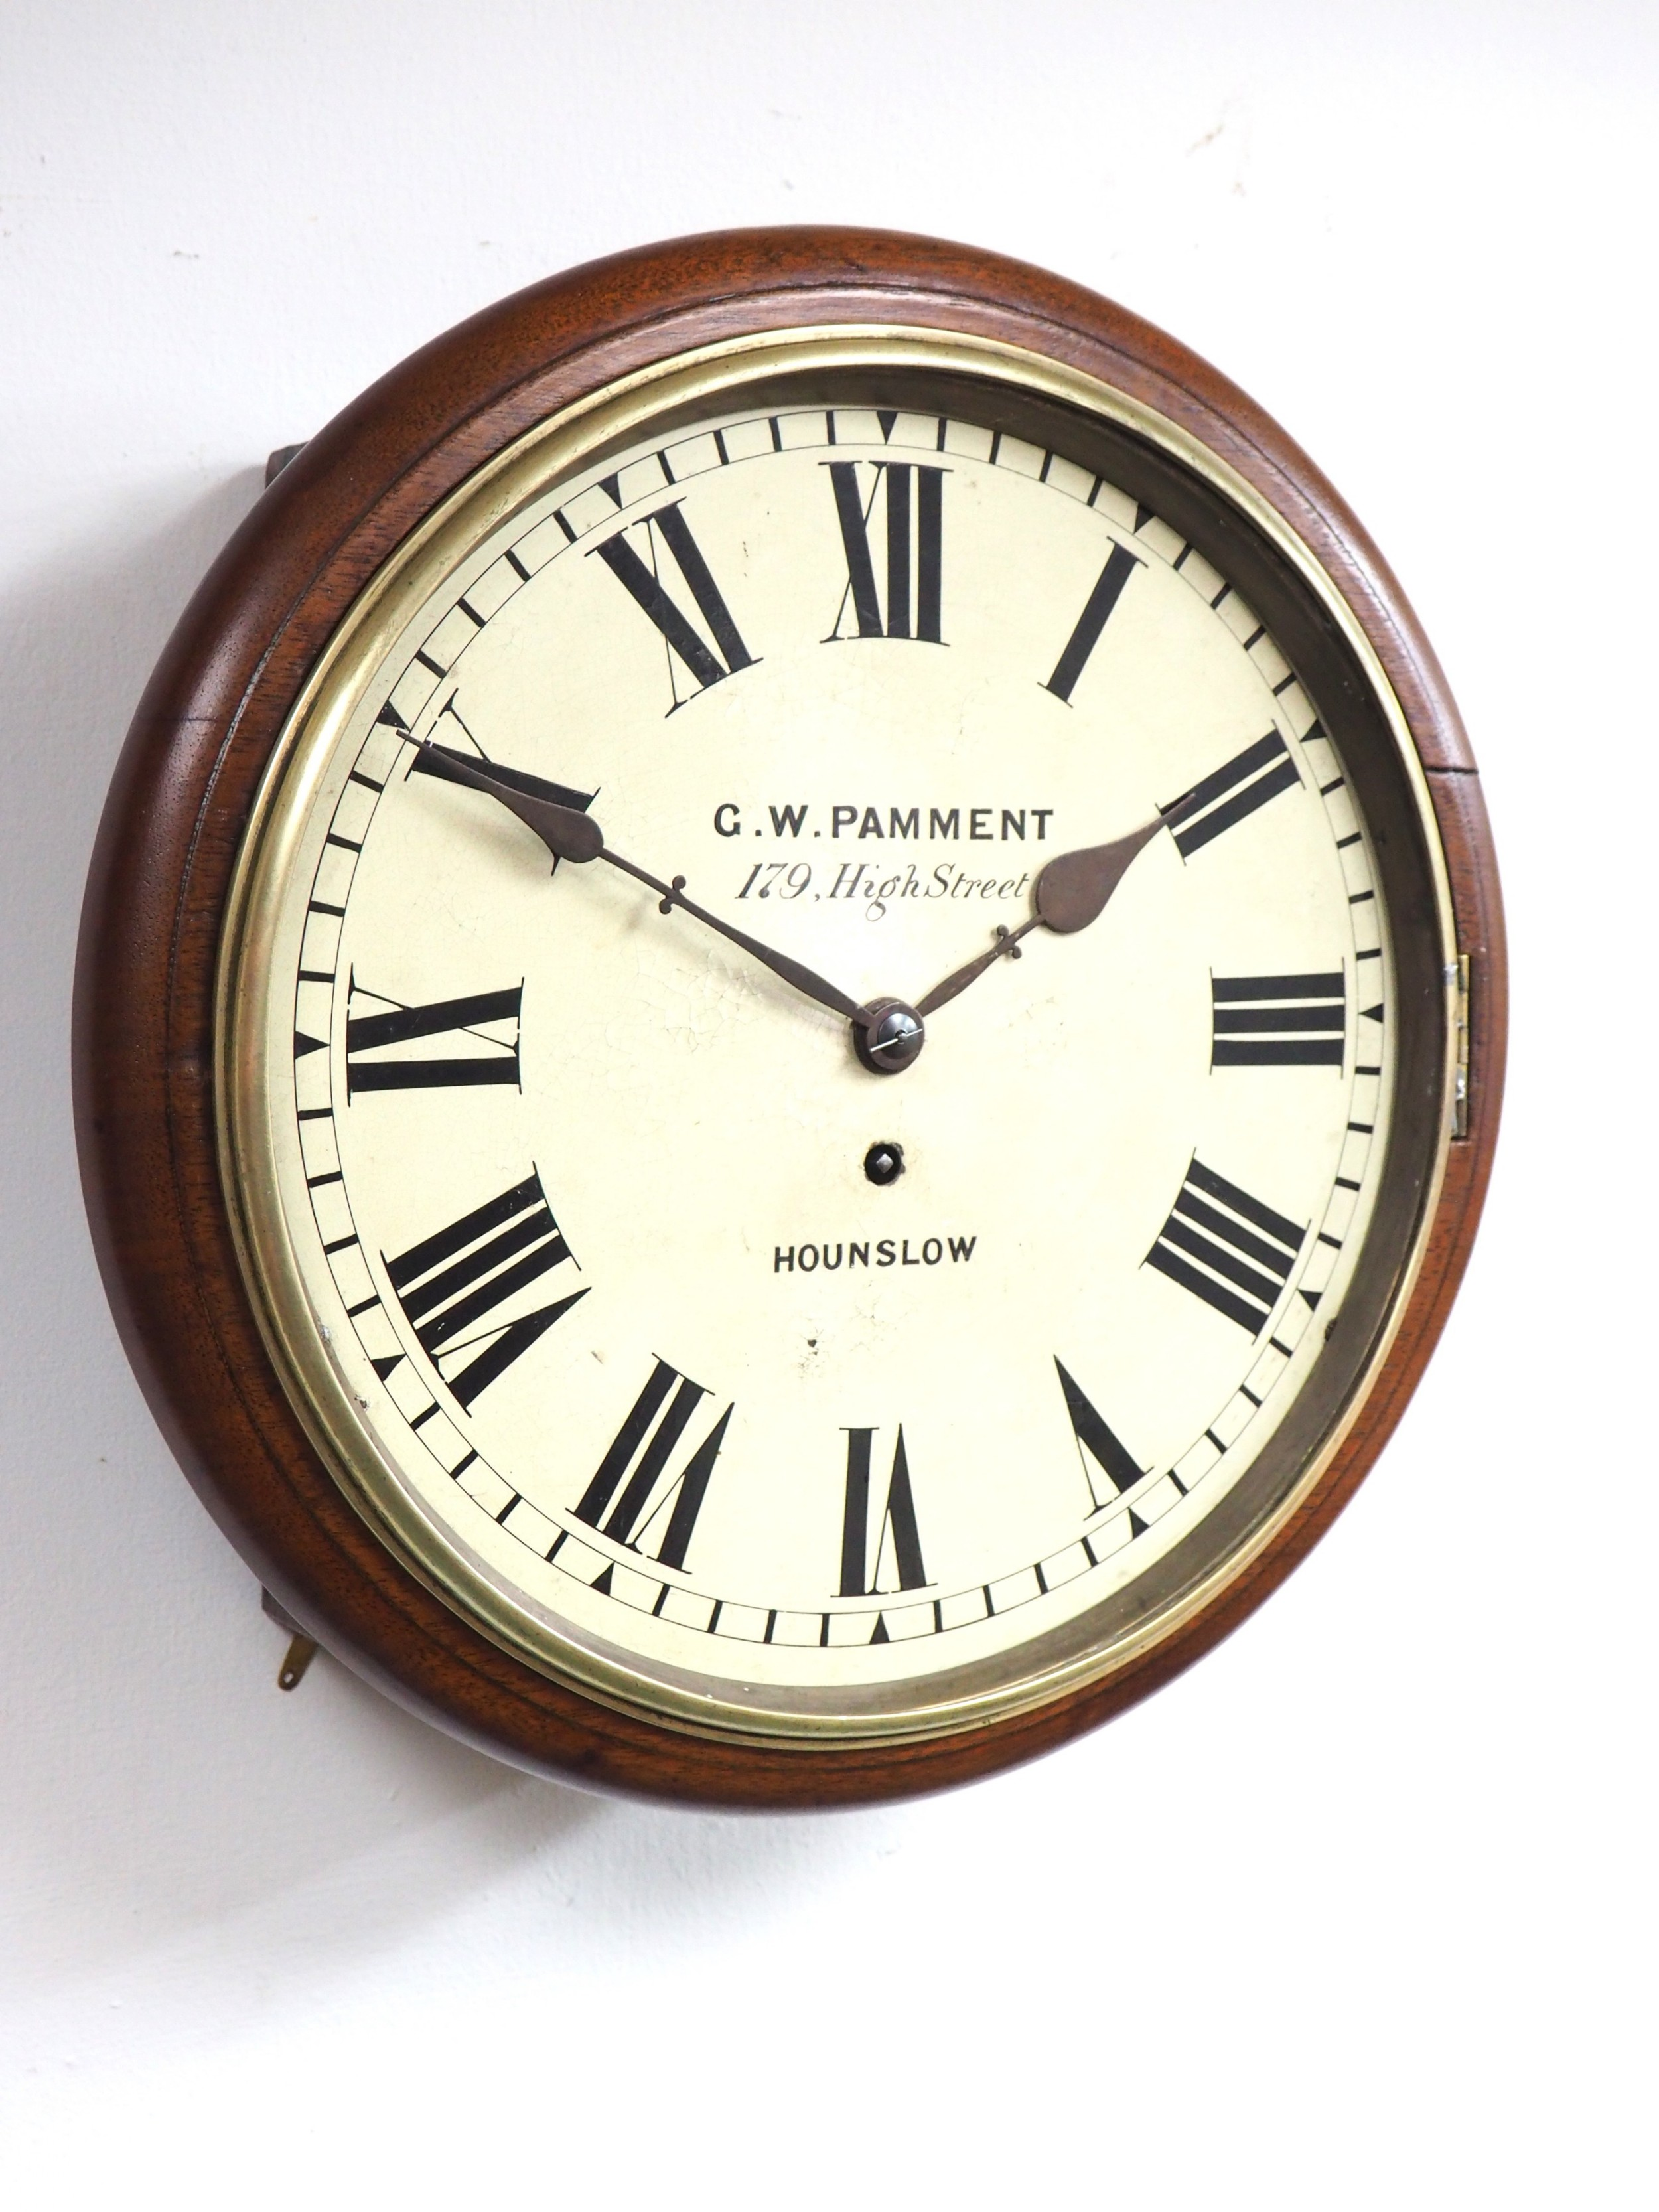 rare english fusee 12 inch dial wall clock mahogany station public school clock signed g w pamment hounslow